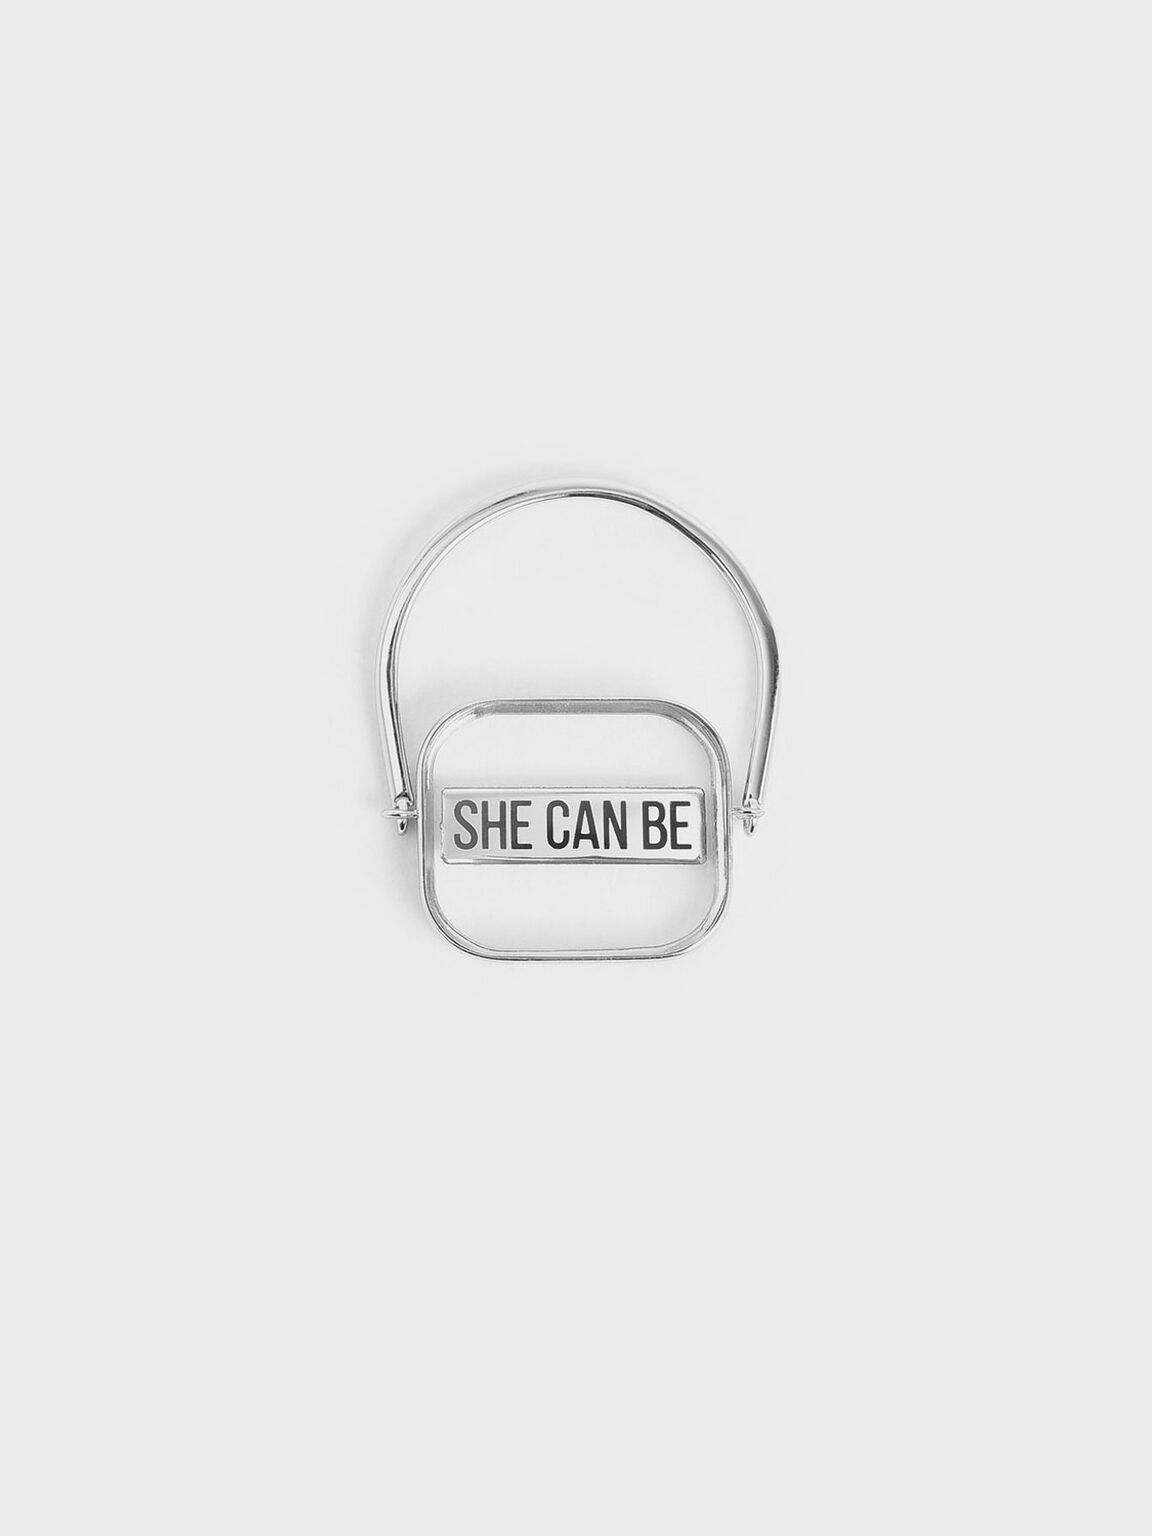 Purpose Collection - 'She Can Be' Ring, Silver, hi-res